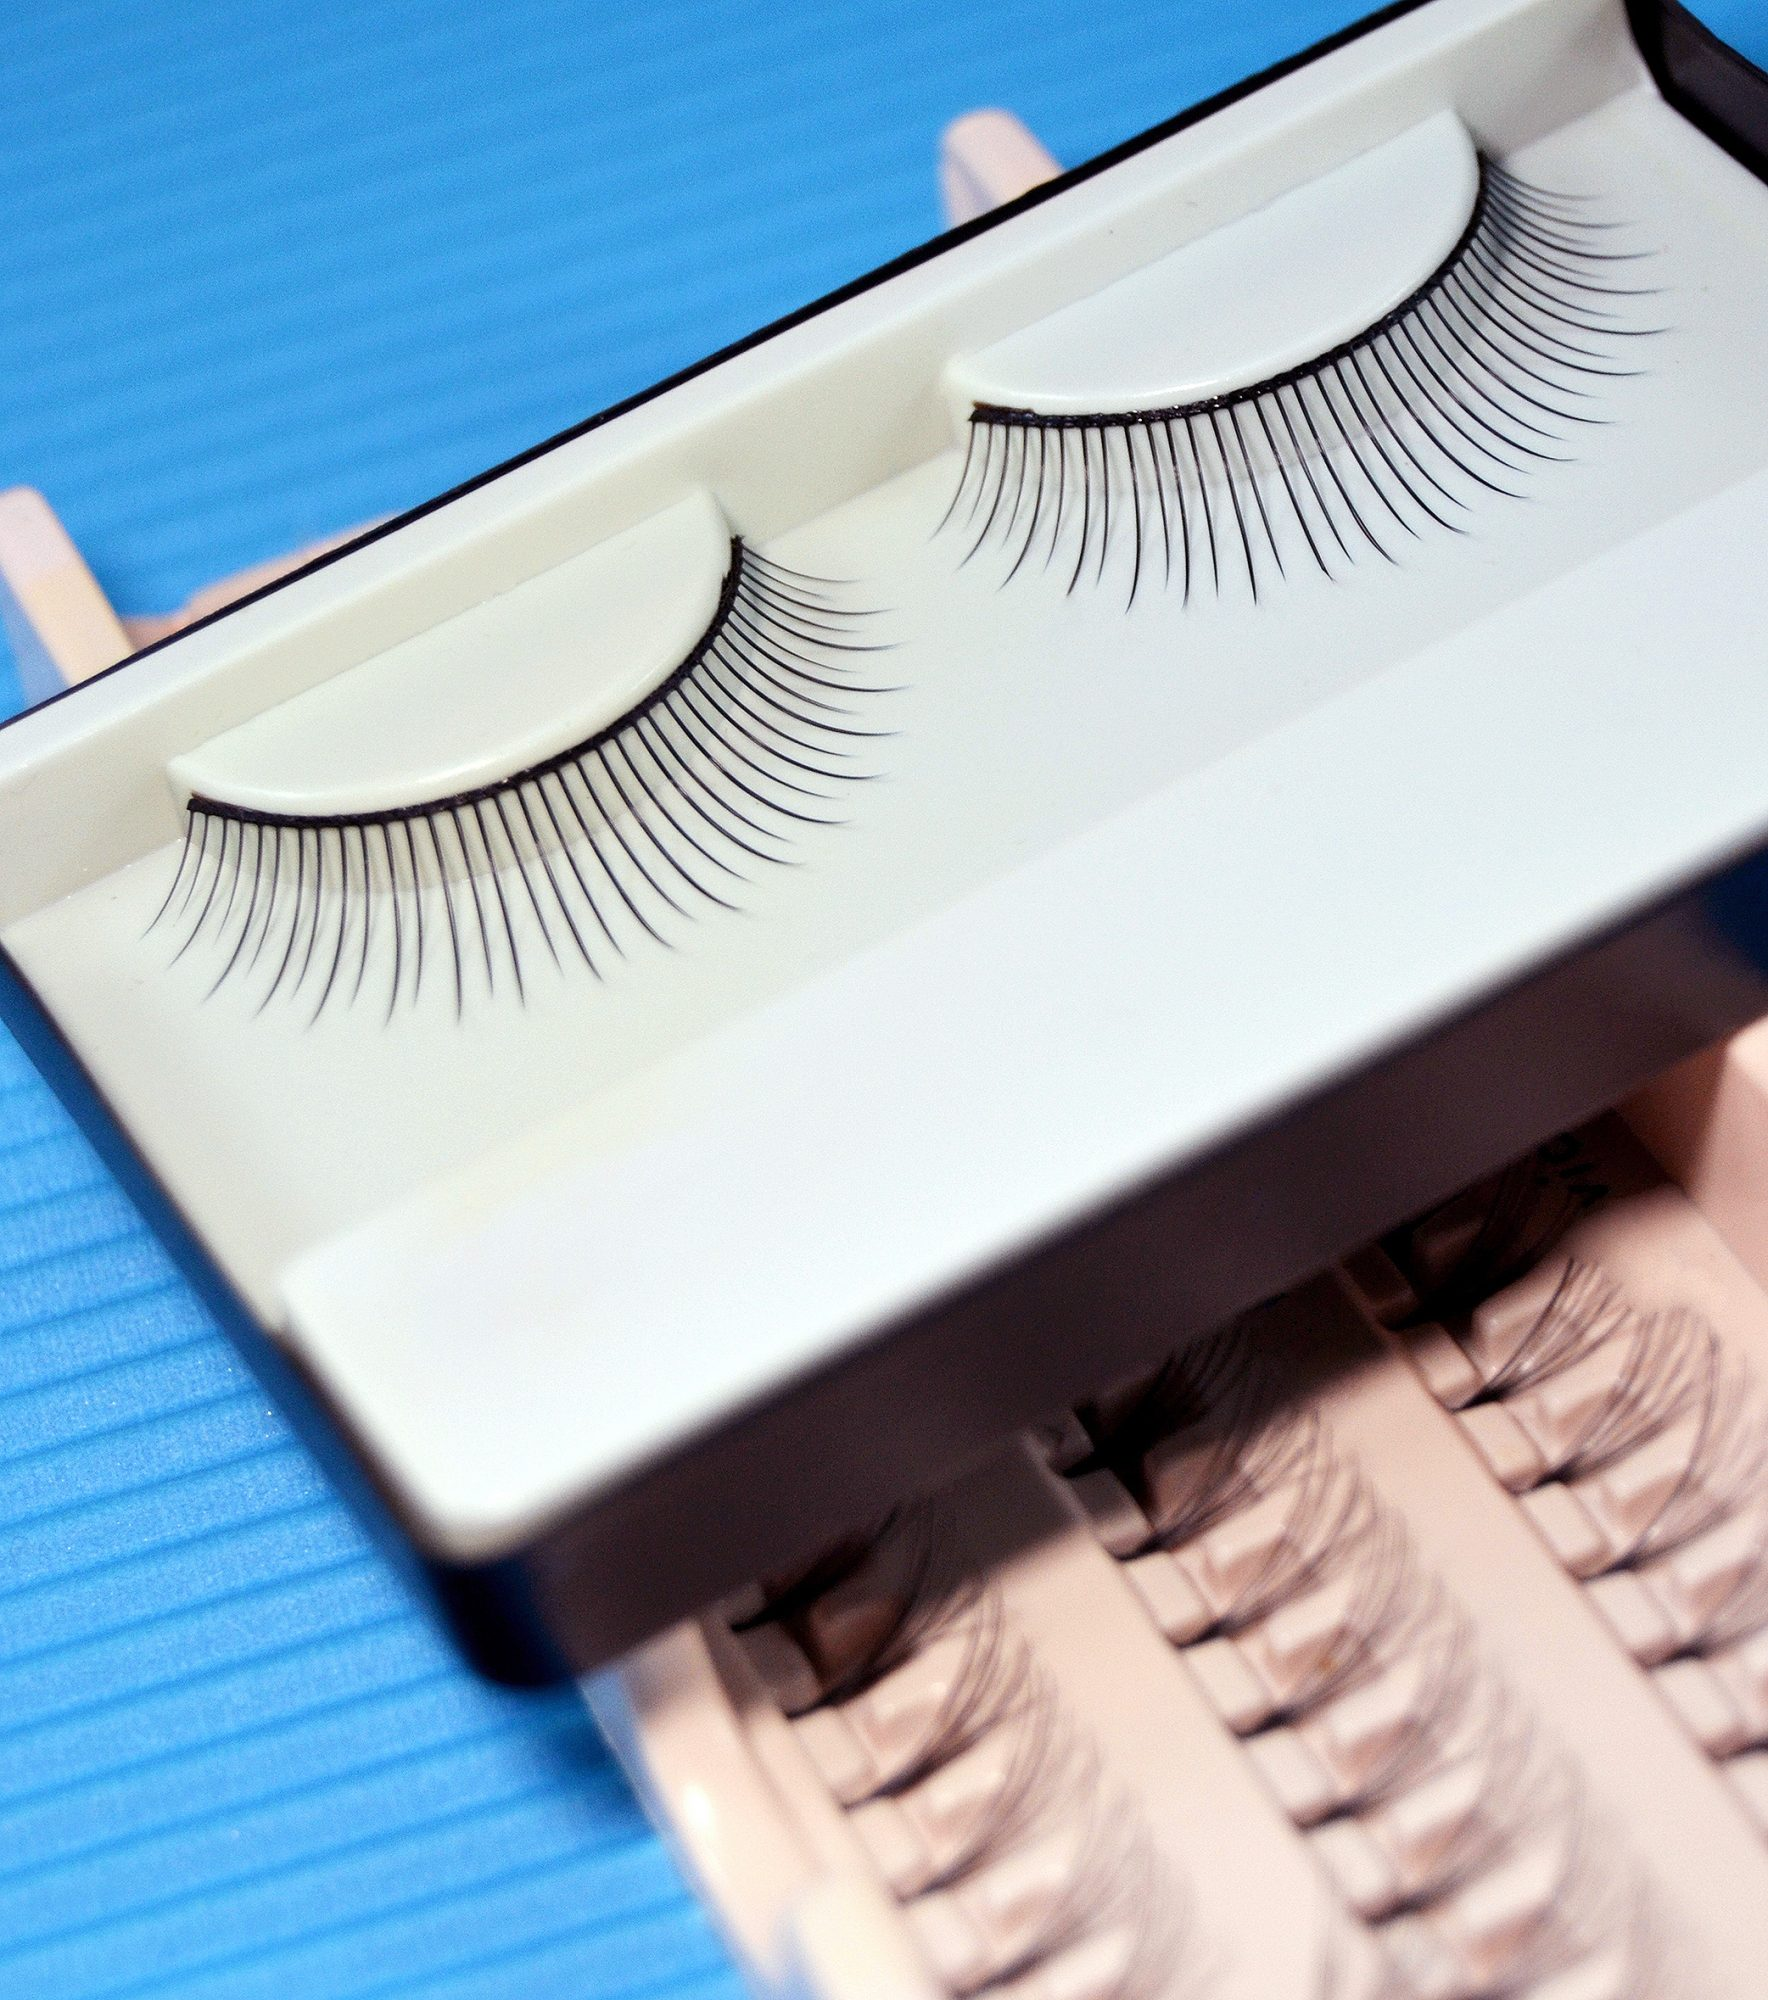 1d0011e4f1a What You Need to Know About Lashify: the False Eyelash System ...